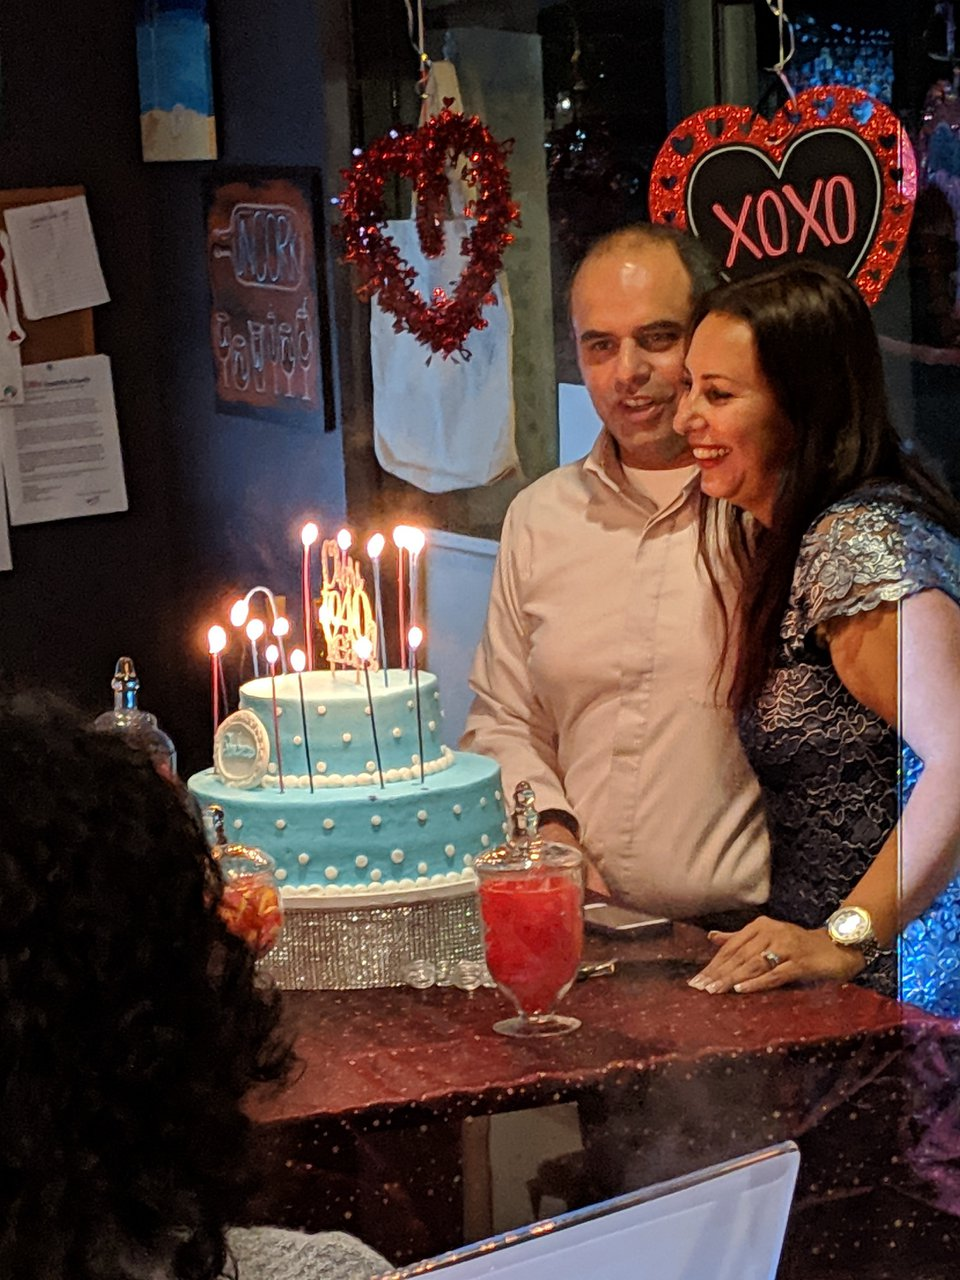 40th Birthday Celebration photo IMG_20190126_214841.jpg